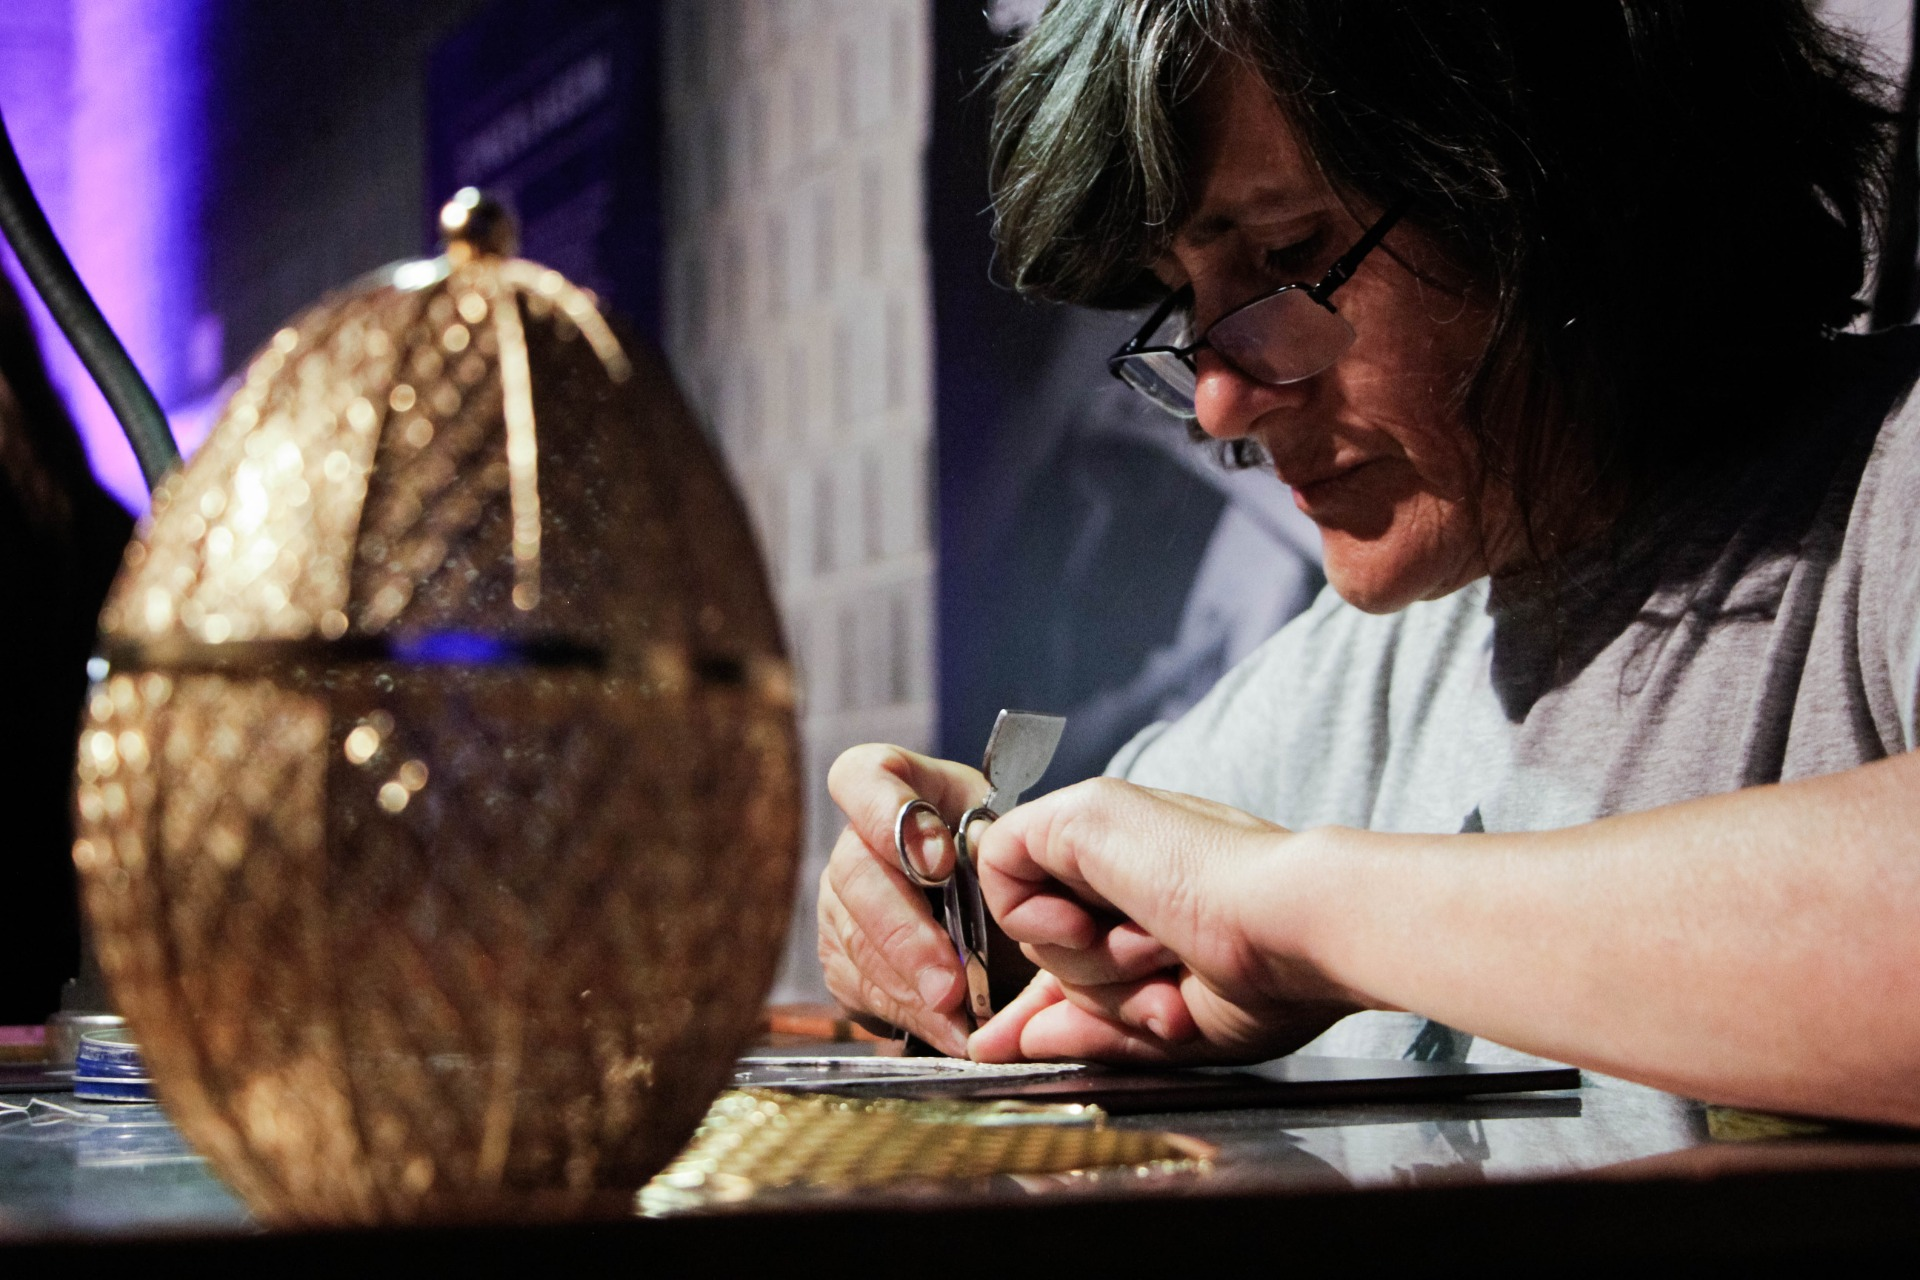 Celebrating Craftsmanship The Luxury Design+Craftsmanship Summit 2019 (11) luxury design Luxury Design+Craftsmanship Summit 2019: Celebrating Arts & Crafts in Porto Celebrating Craftsmanship The Luxury DesignCraftsmanship Summit 2019 11